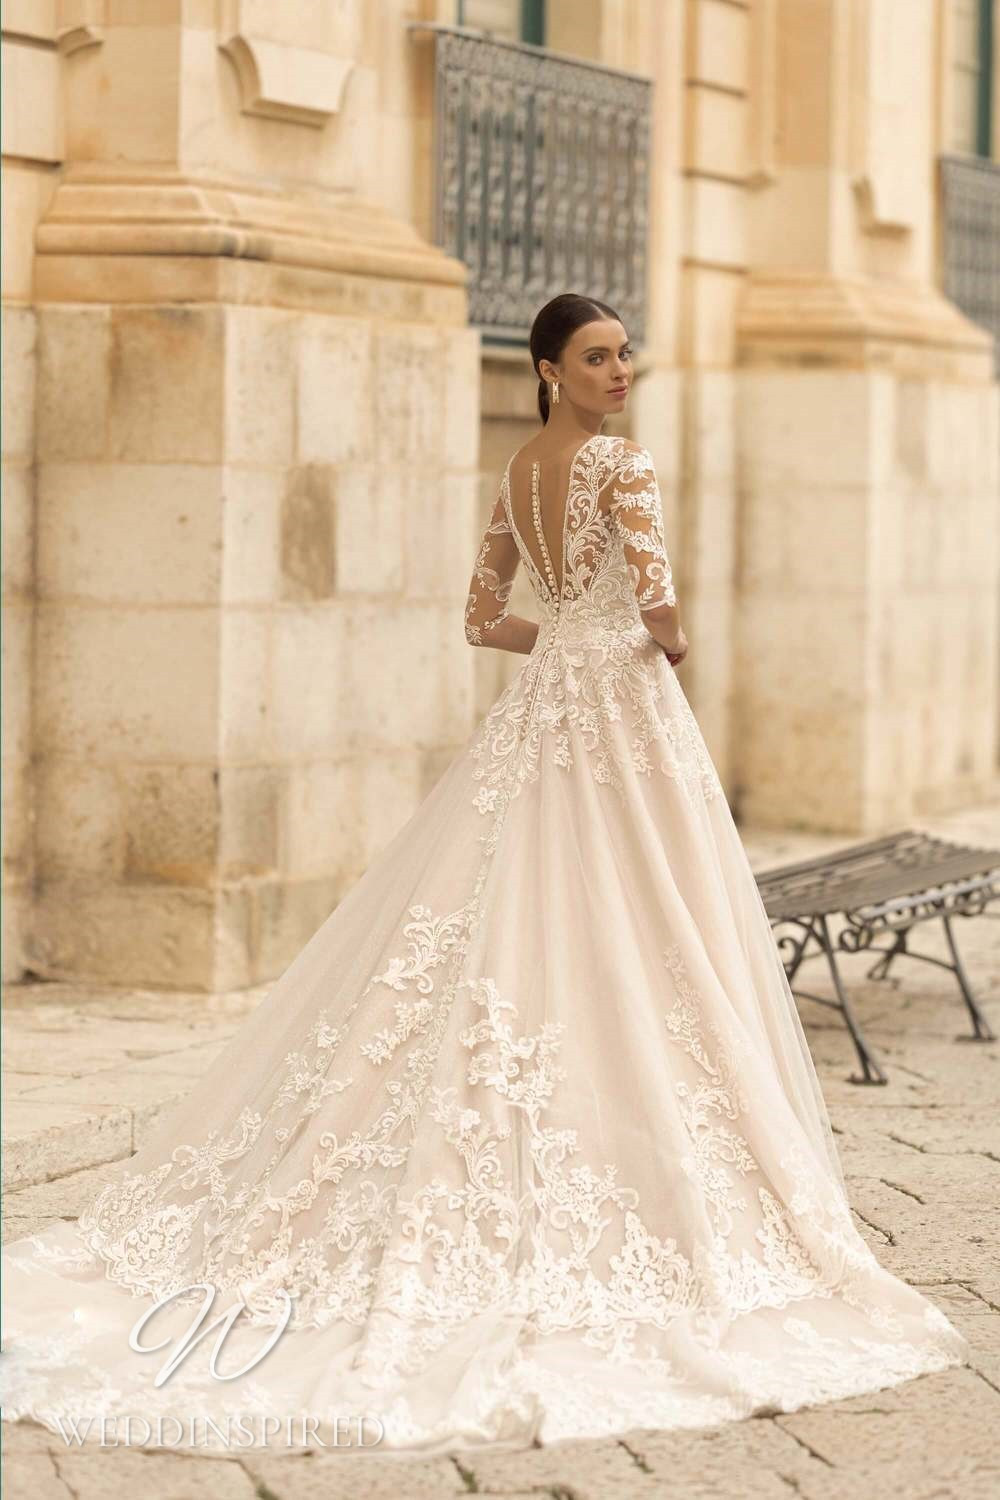 A Lussano 2021 lace and tulle A-line wedding dress with long sleeves